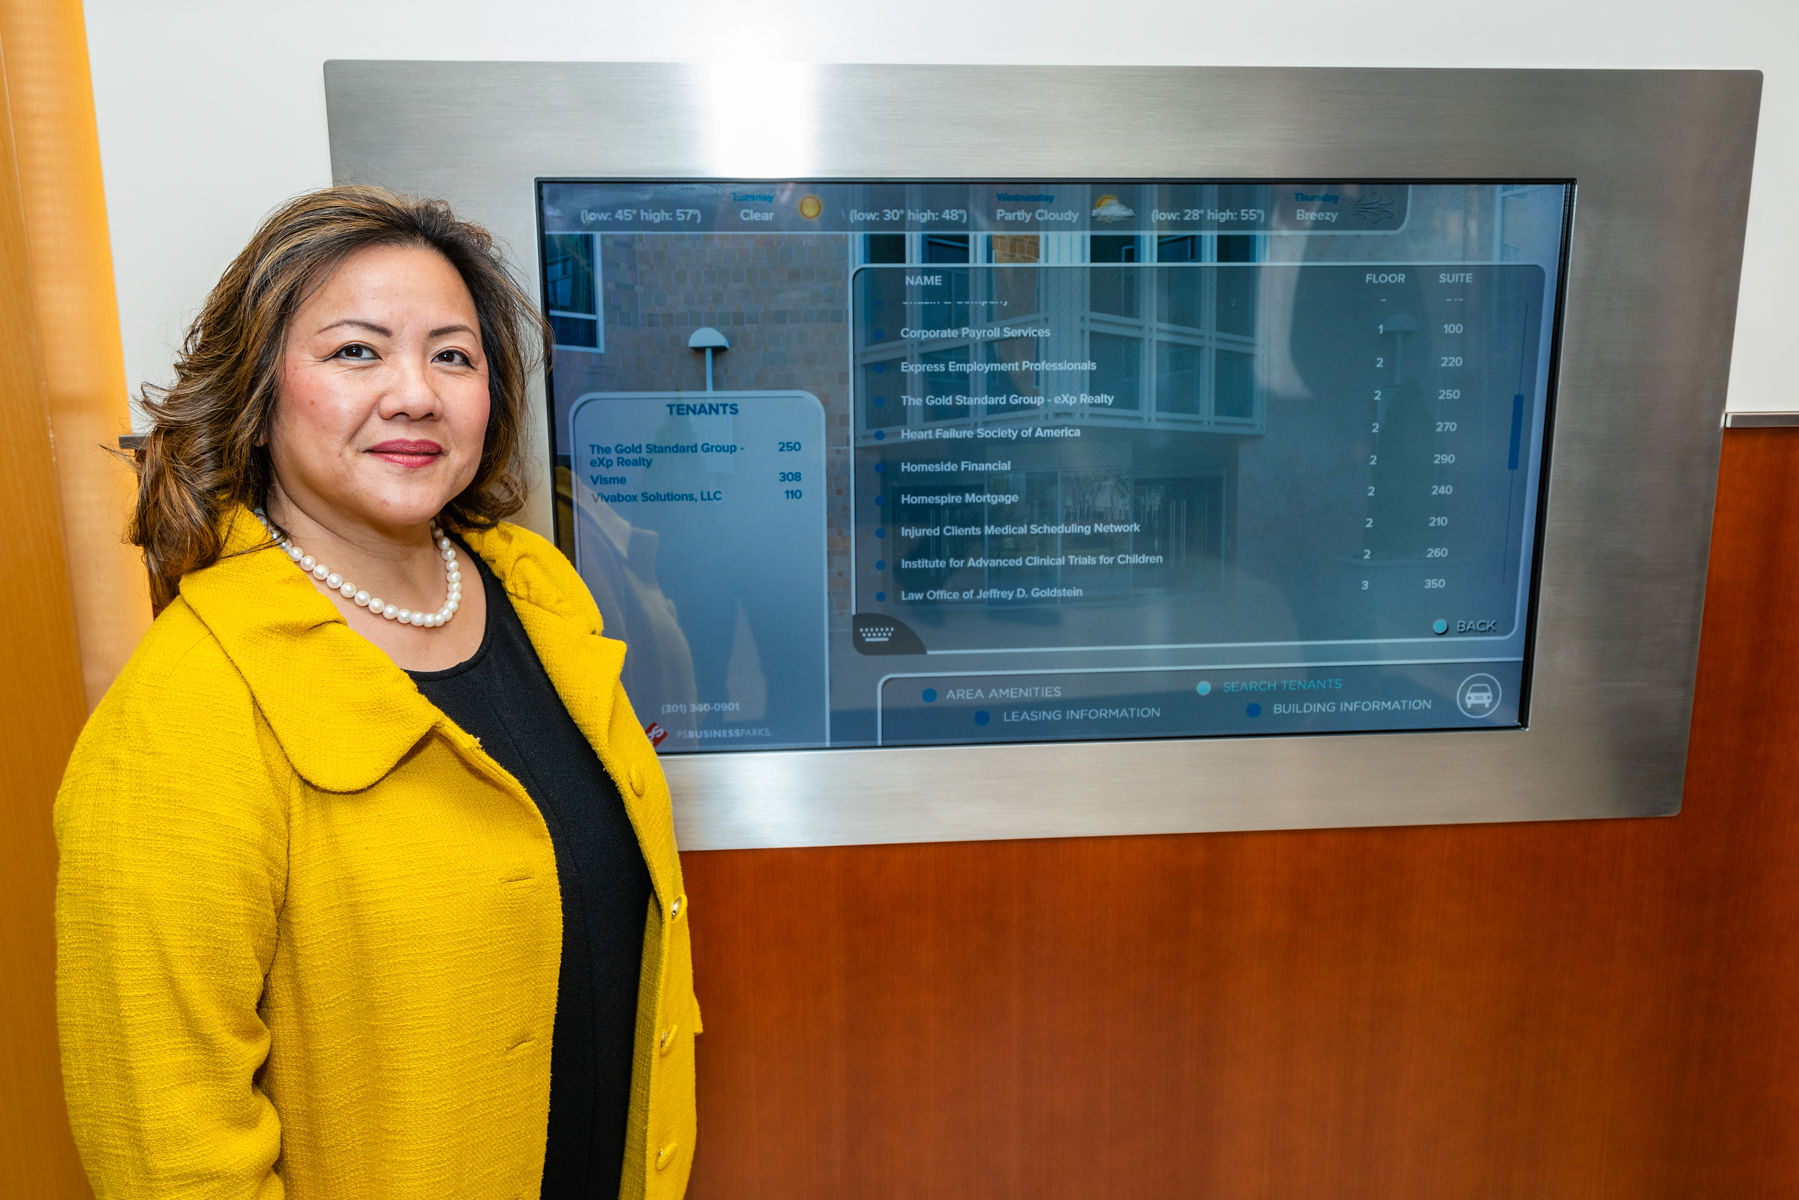 Tina Cheung and The Gold Standard Group with eXp Realty reviews | Real Estate Services at 9211 Corporate Blvd - Rockville MD